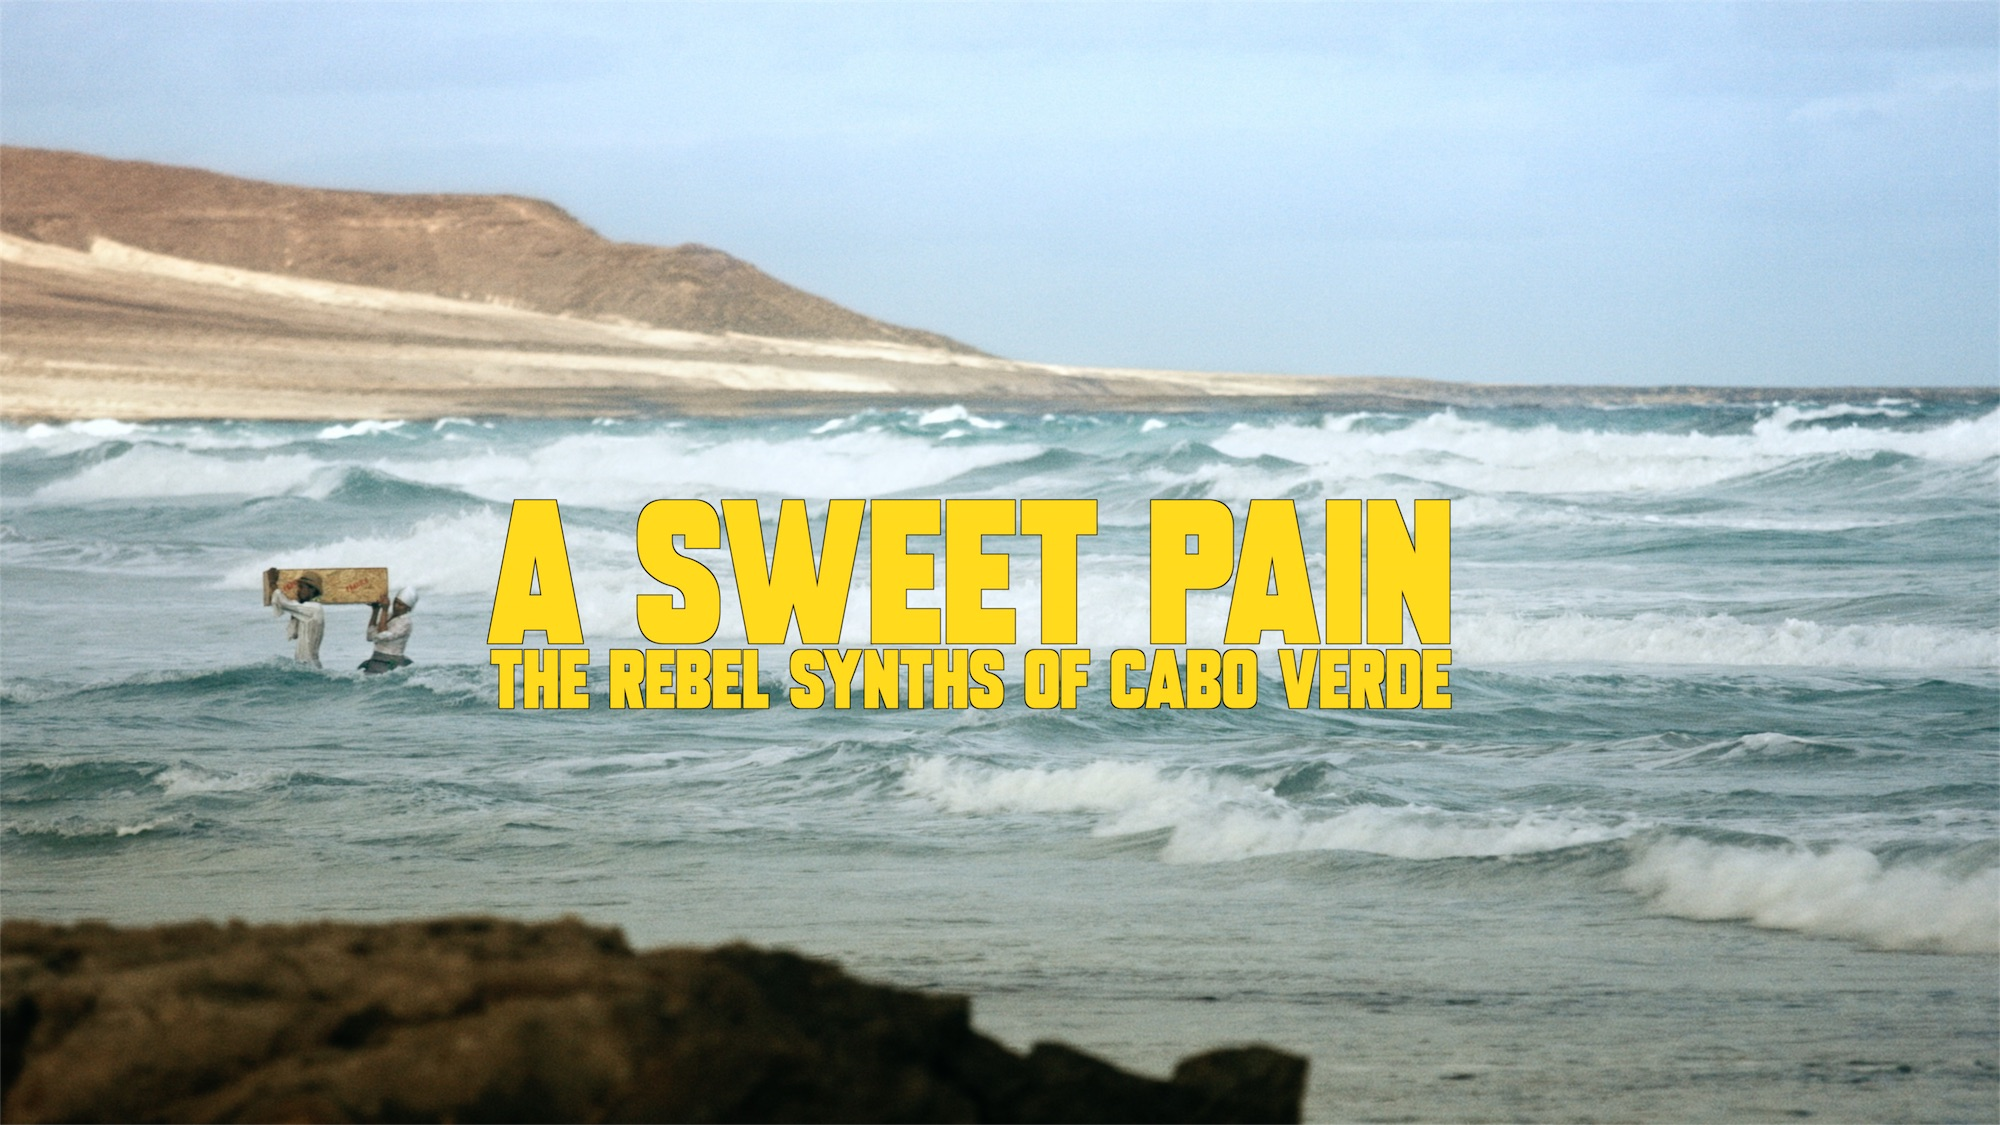 Watch our short film on the cosmic sound of Cabo Verde